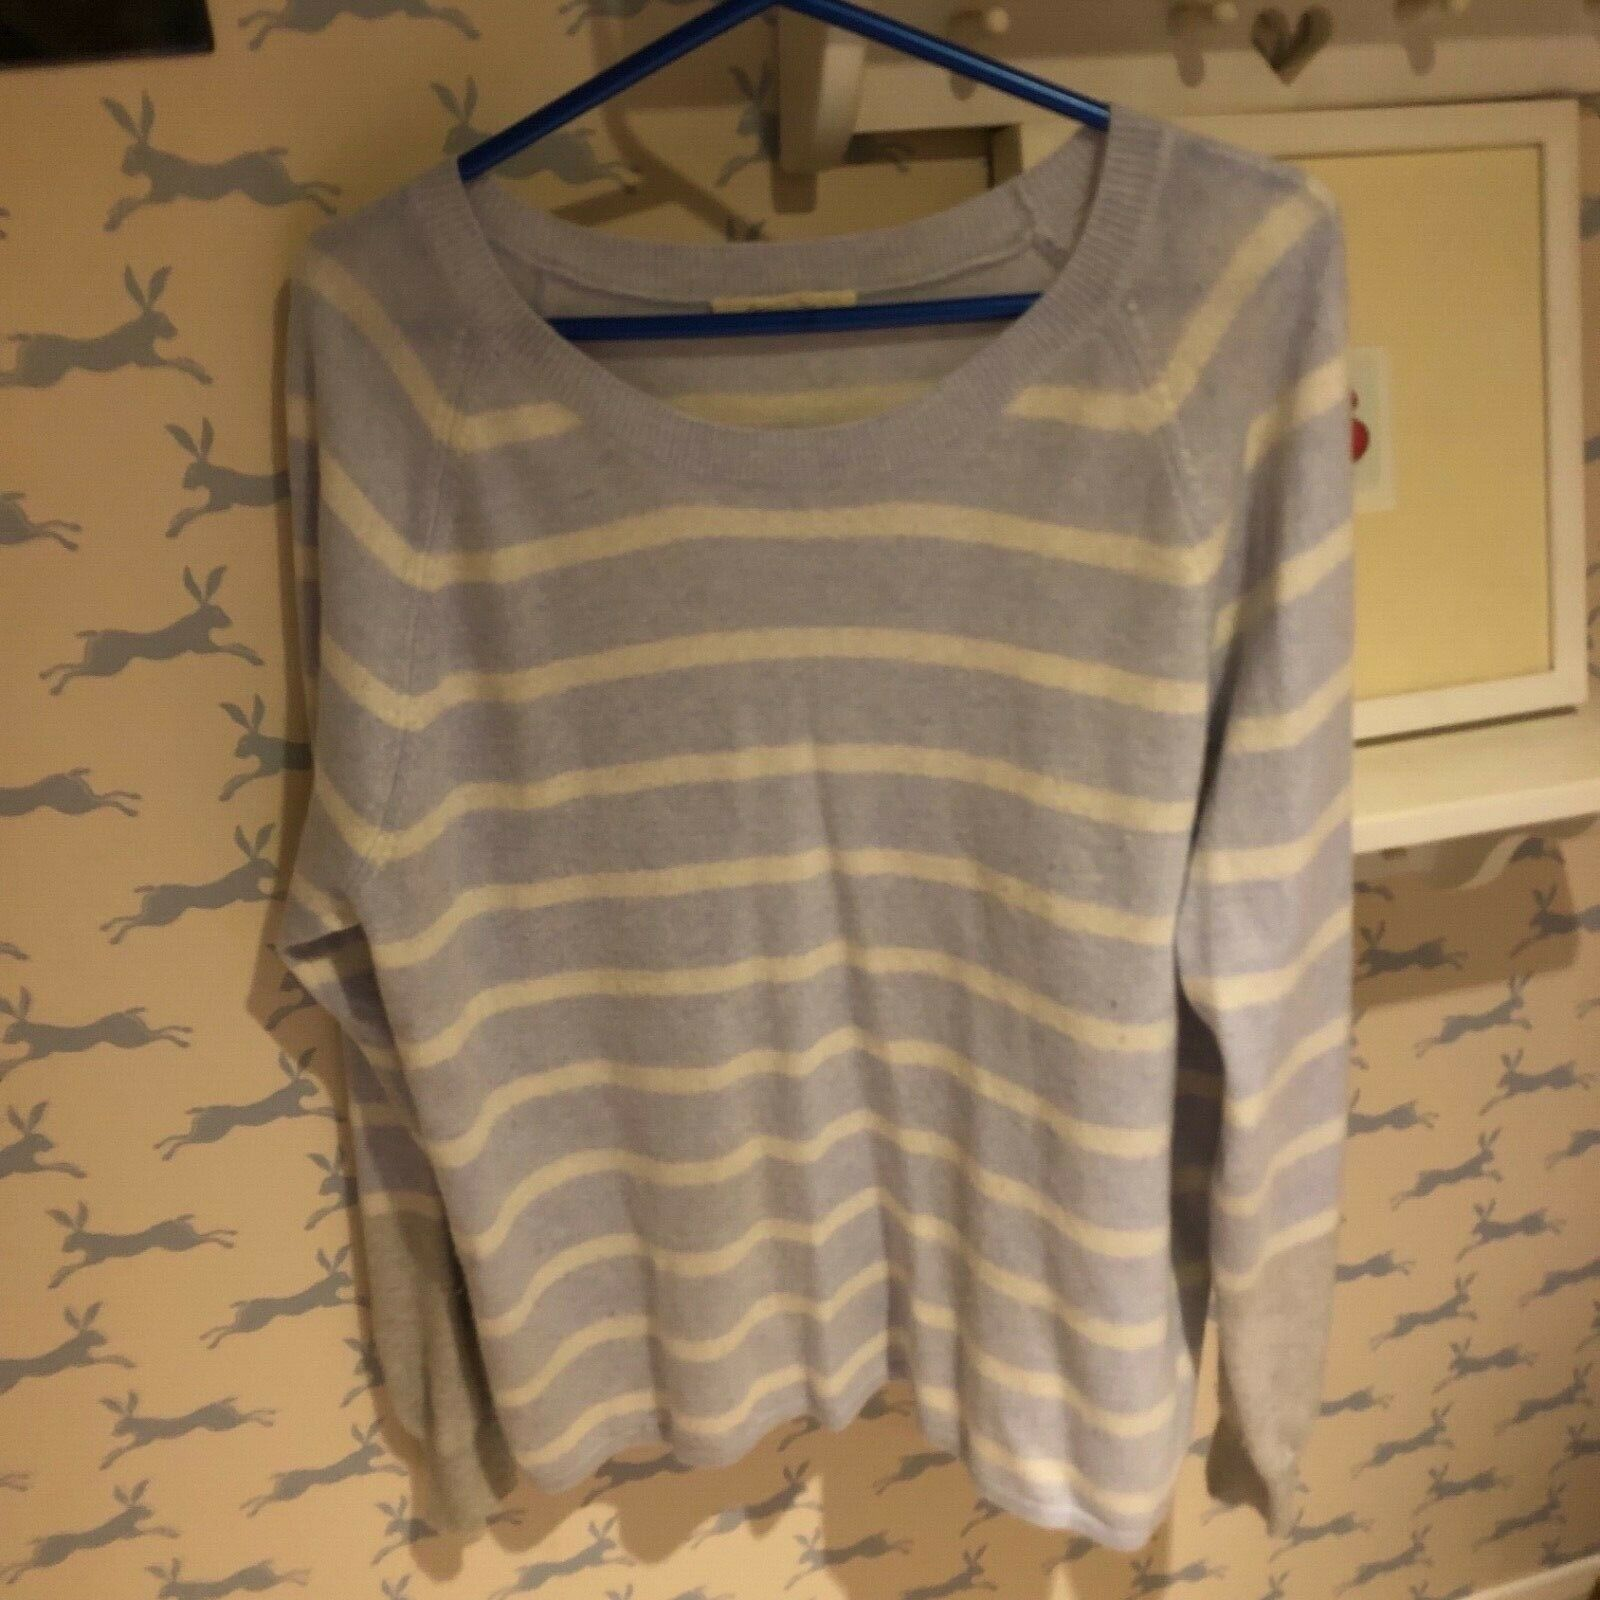 Authentic Duffy Cashmere Sweater Pale bluee Cream Grey Size Large RRP